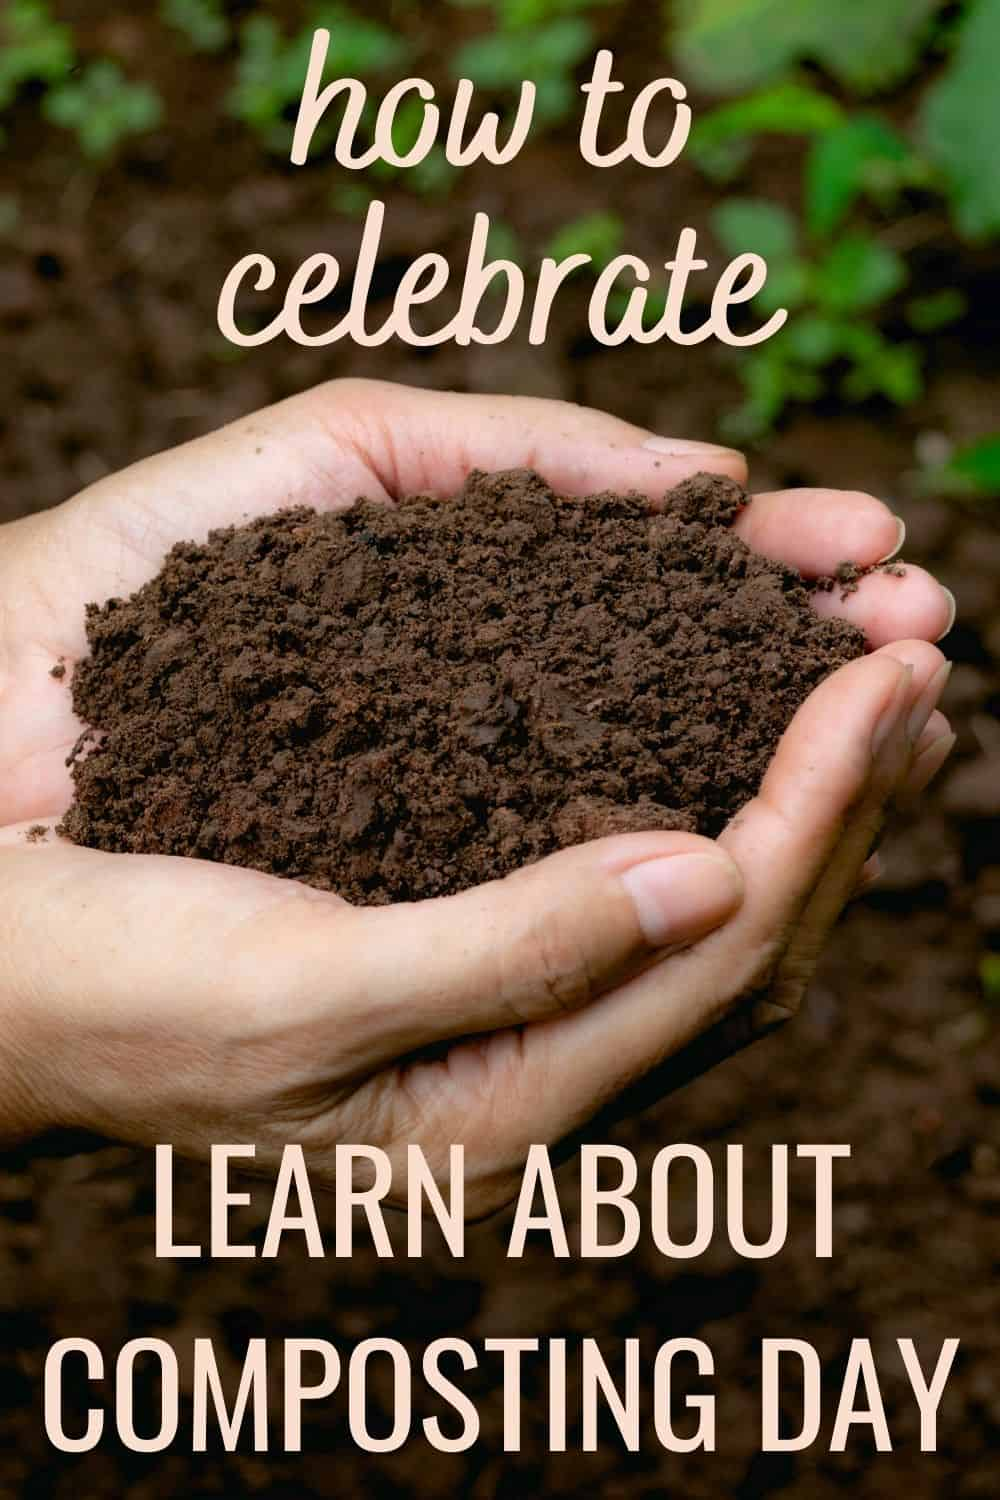 How to celebrate learn about composting day